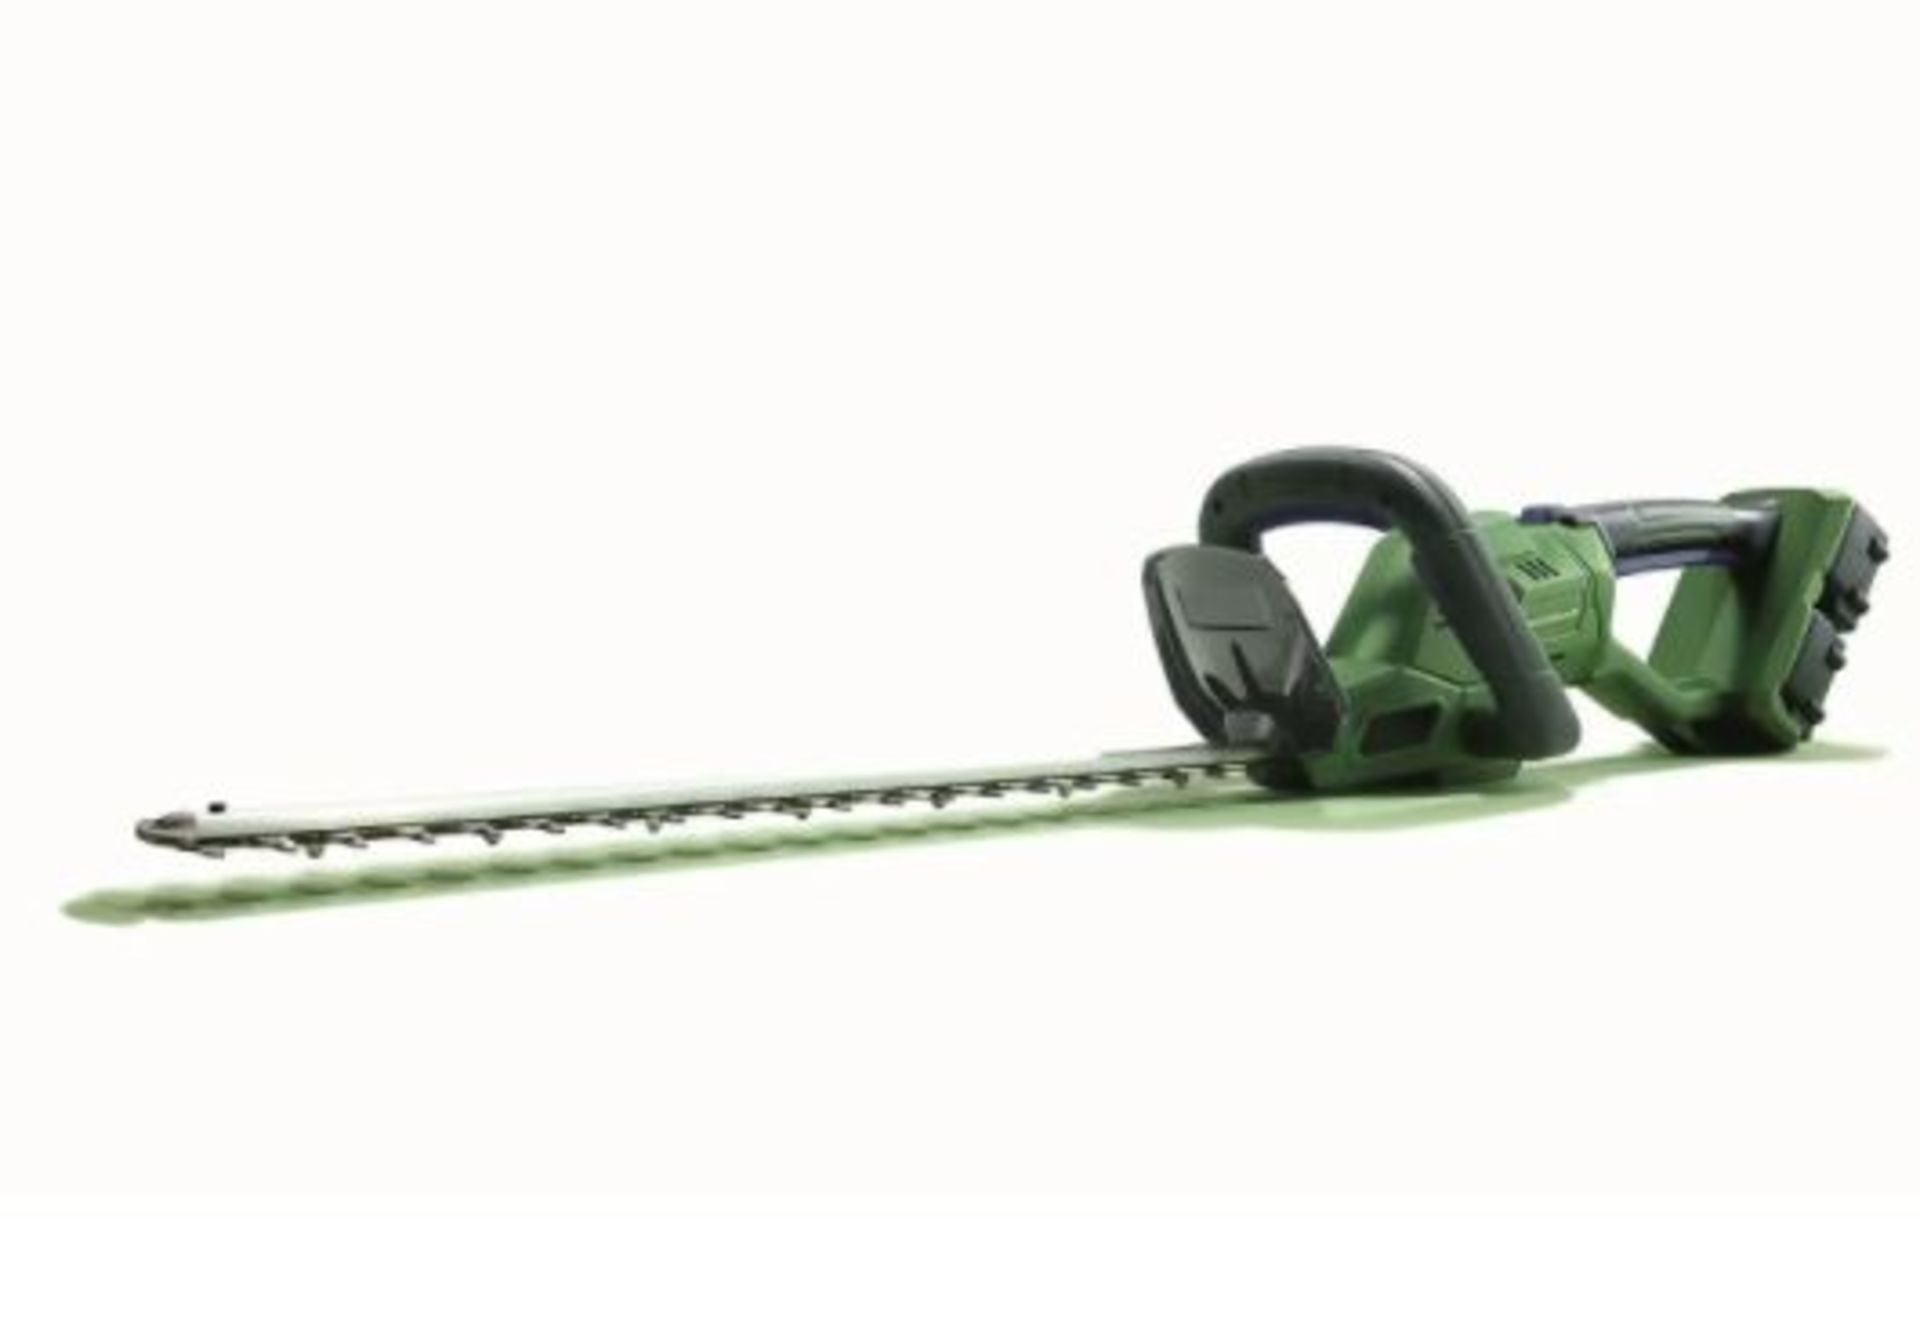 (P5) 2x Powerbase Items. 1x 52cm 40V Cordless Hedge Trimmer RRP £90 (Unit Appears Clean., Unused Wi